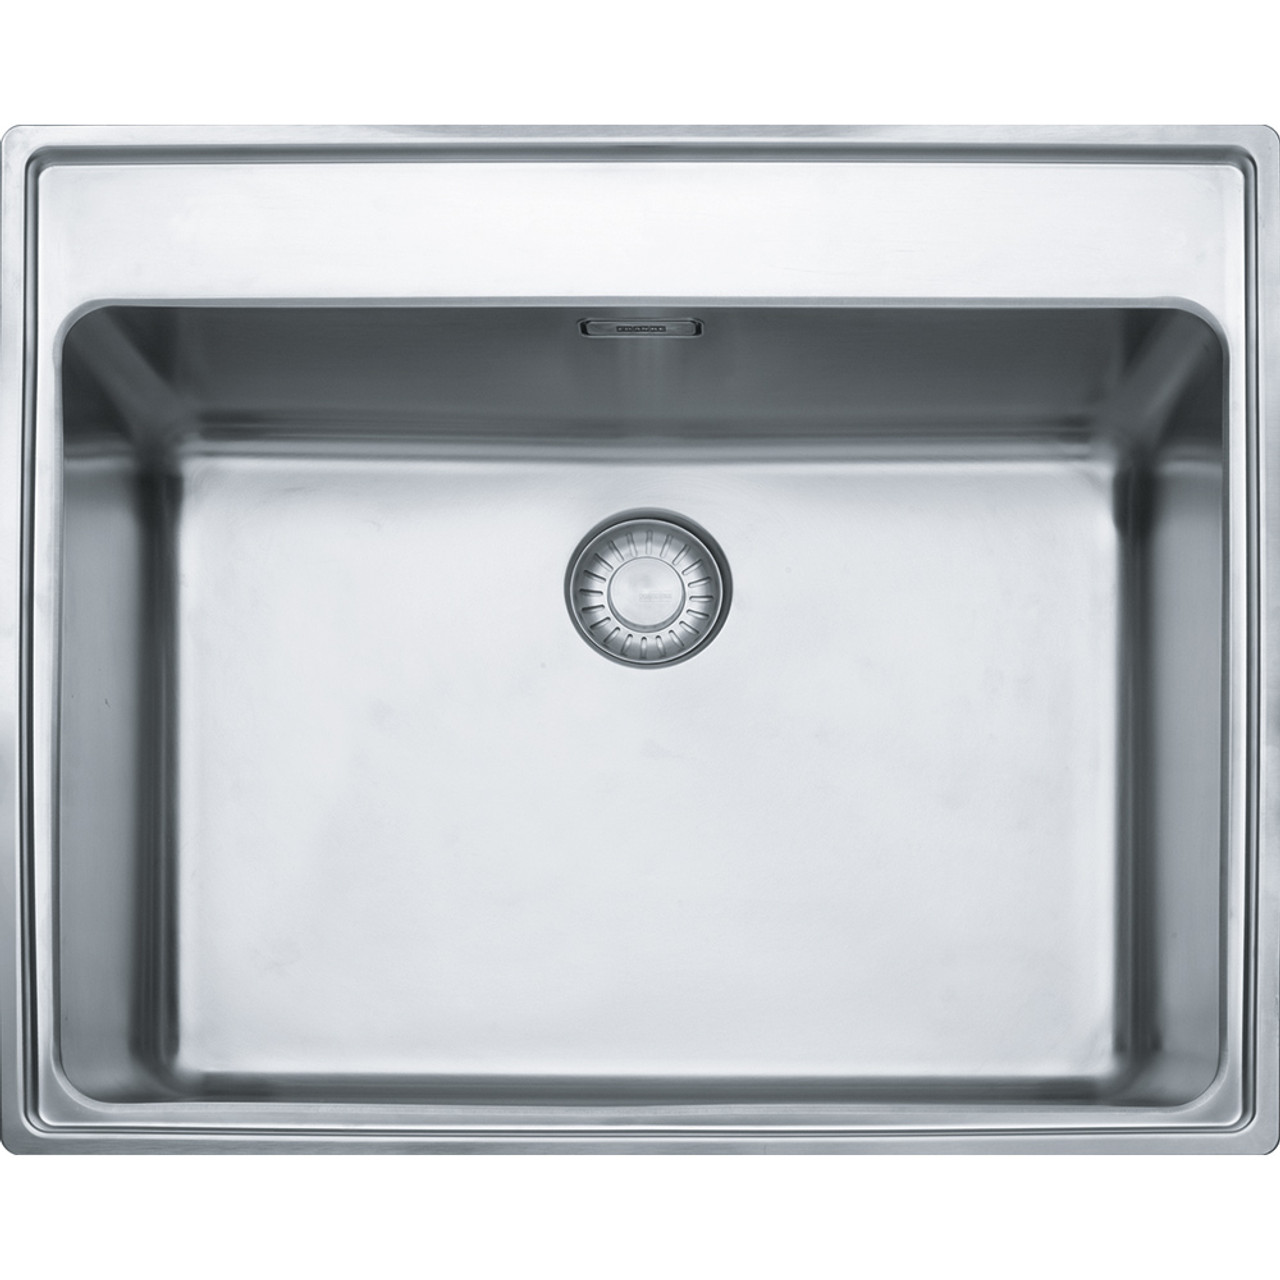 Franke Midas MTX61055 Stainless Steel Kitchen Sink Sinks